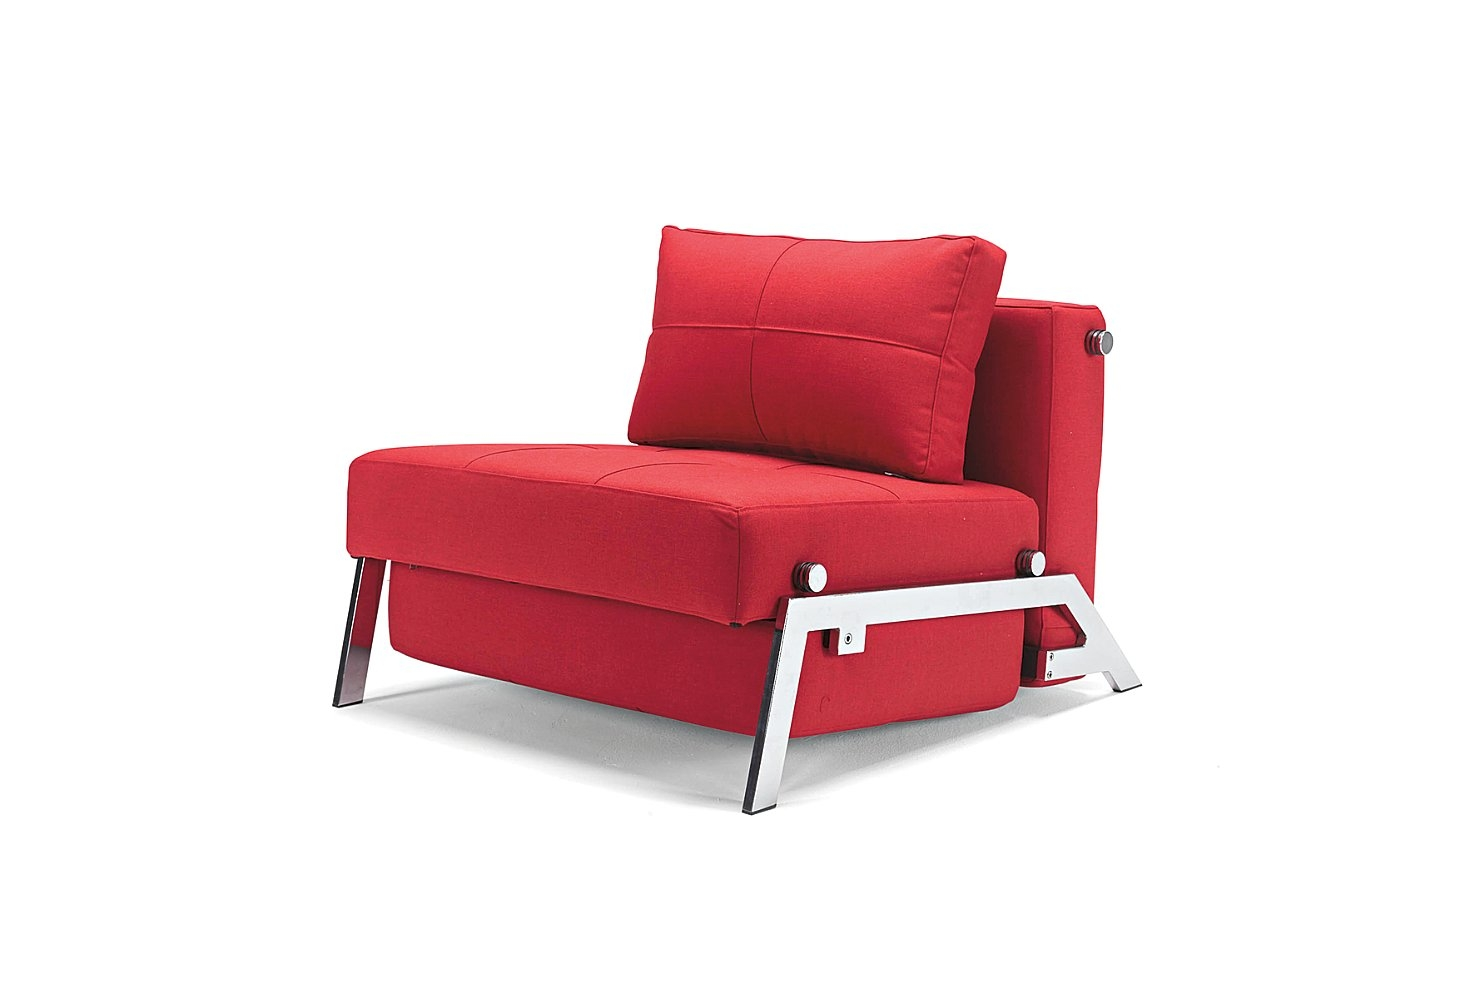 54 Single Sofa Bed Chair About Single Sofa Bed Chair On Pinterest In Sofa Bed Chairs (Photo 2 of 15)